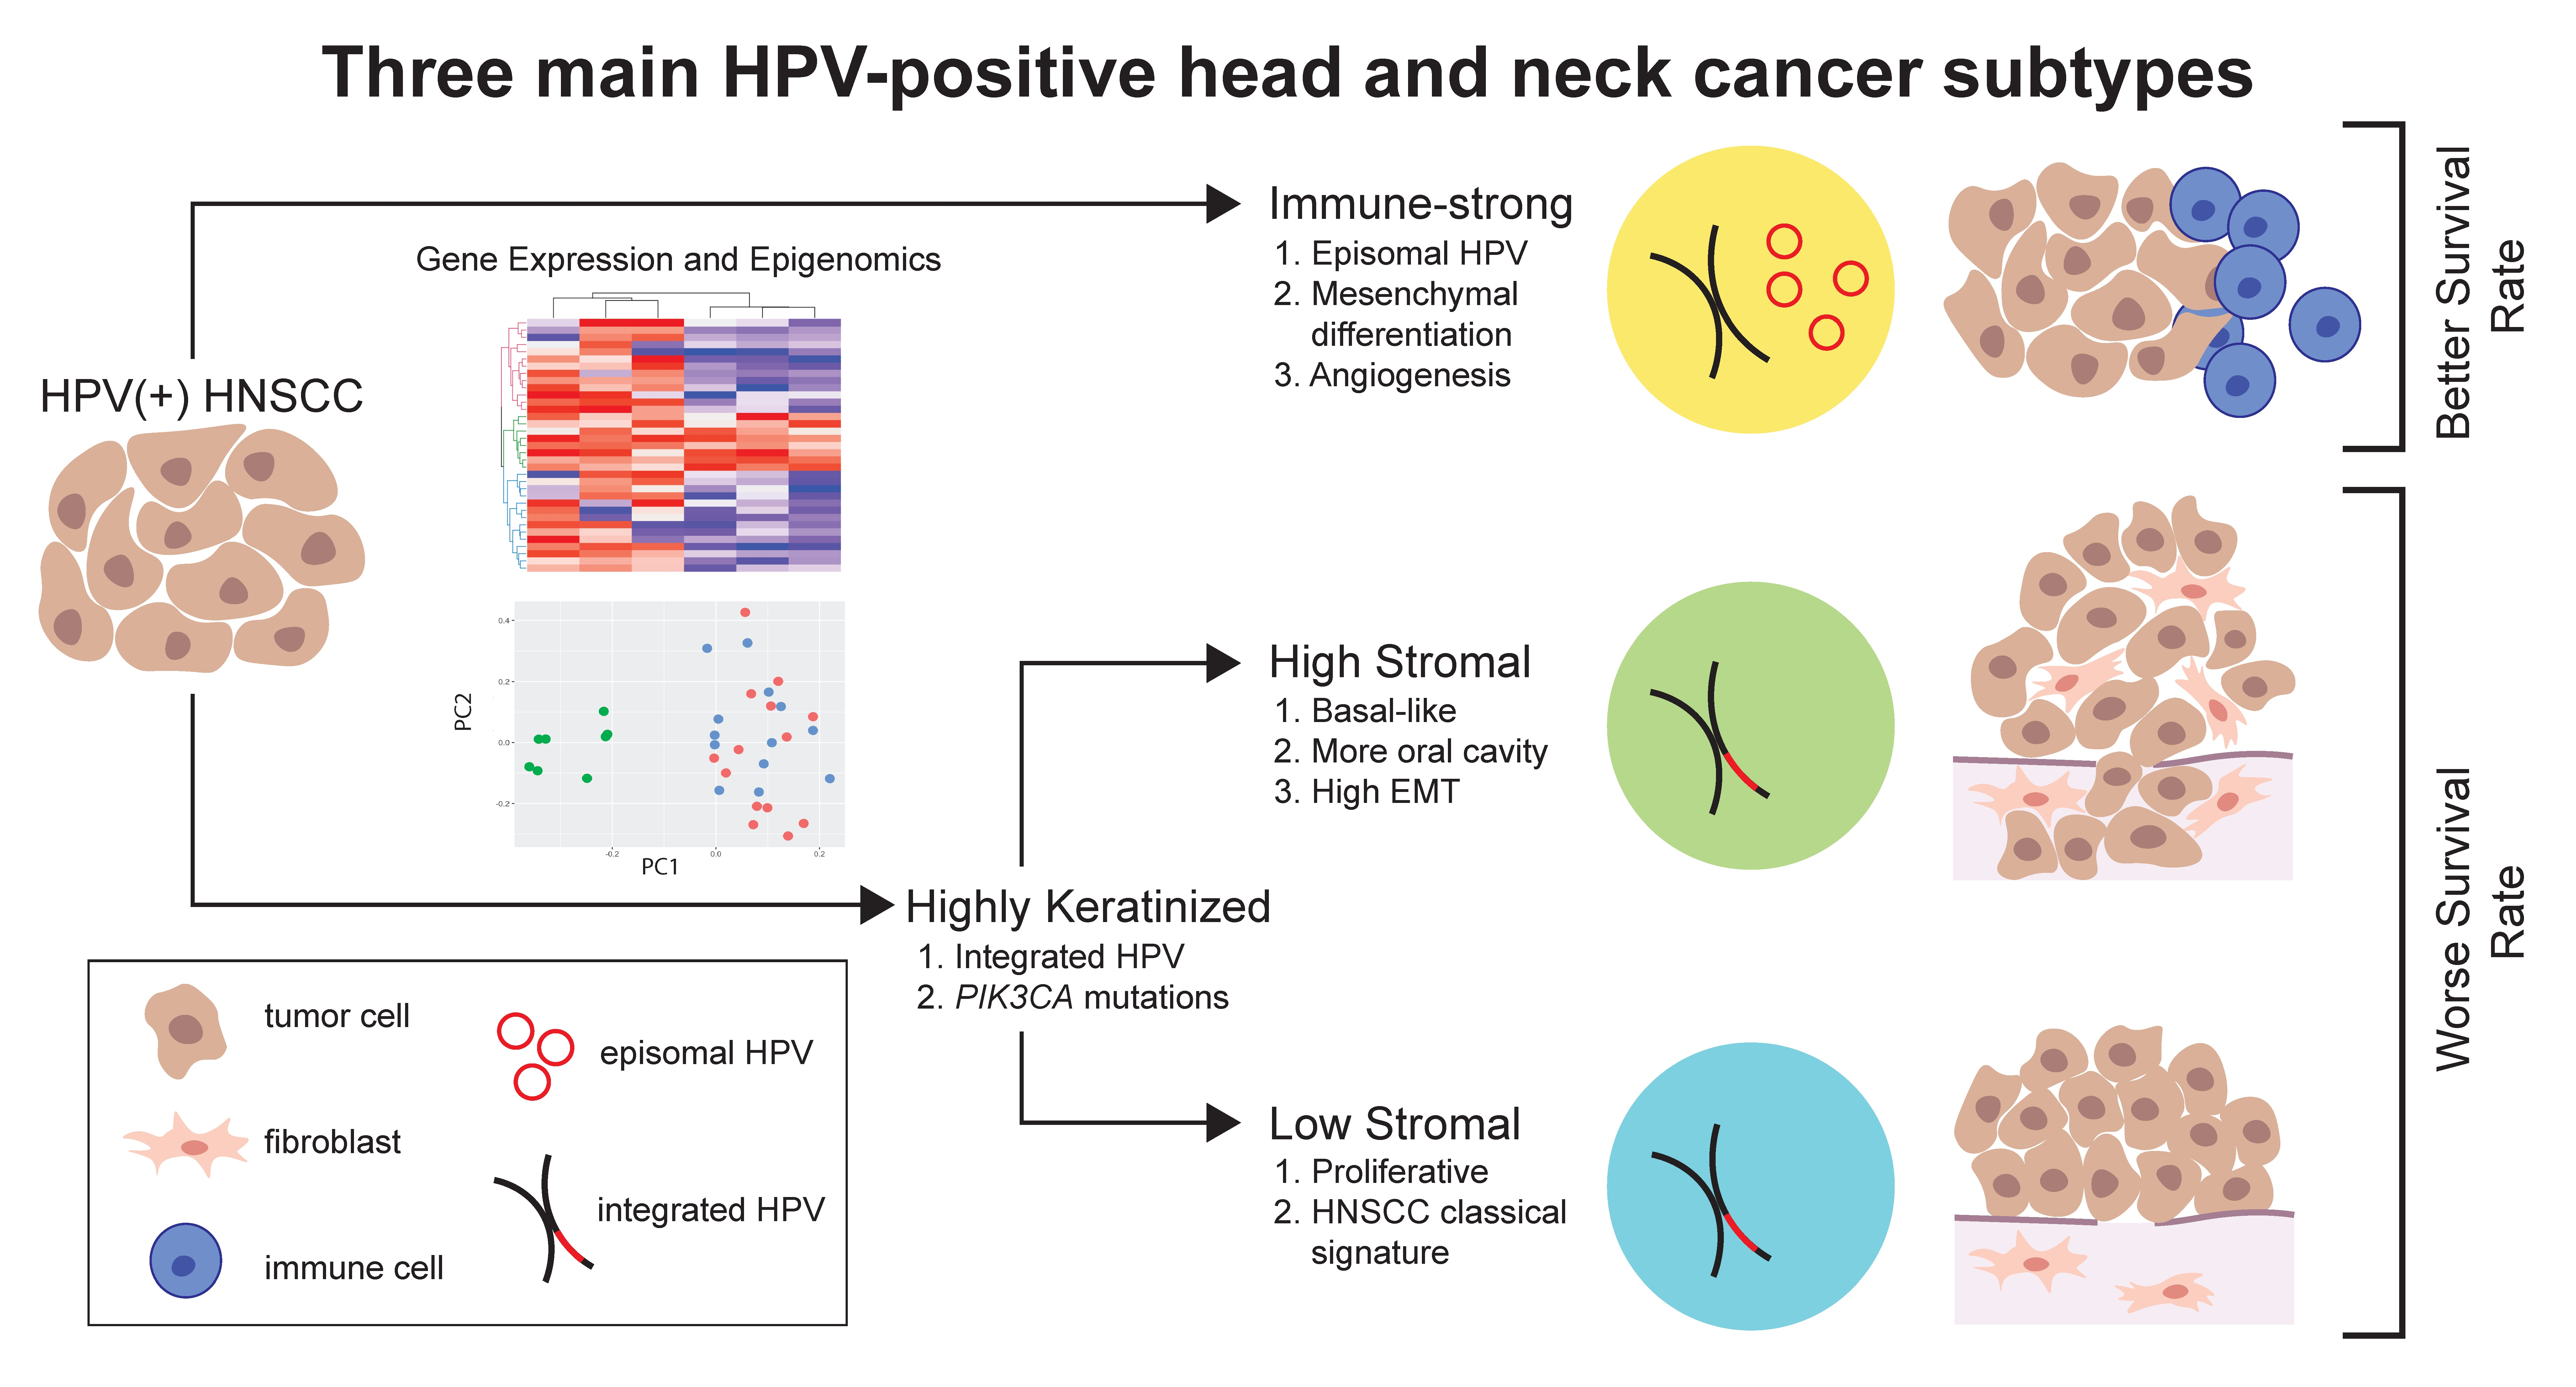 hpv subtypes head and neck cancer